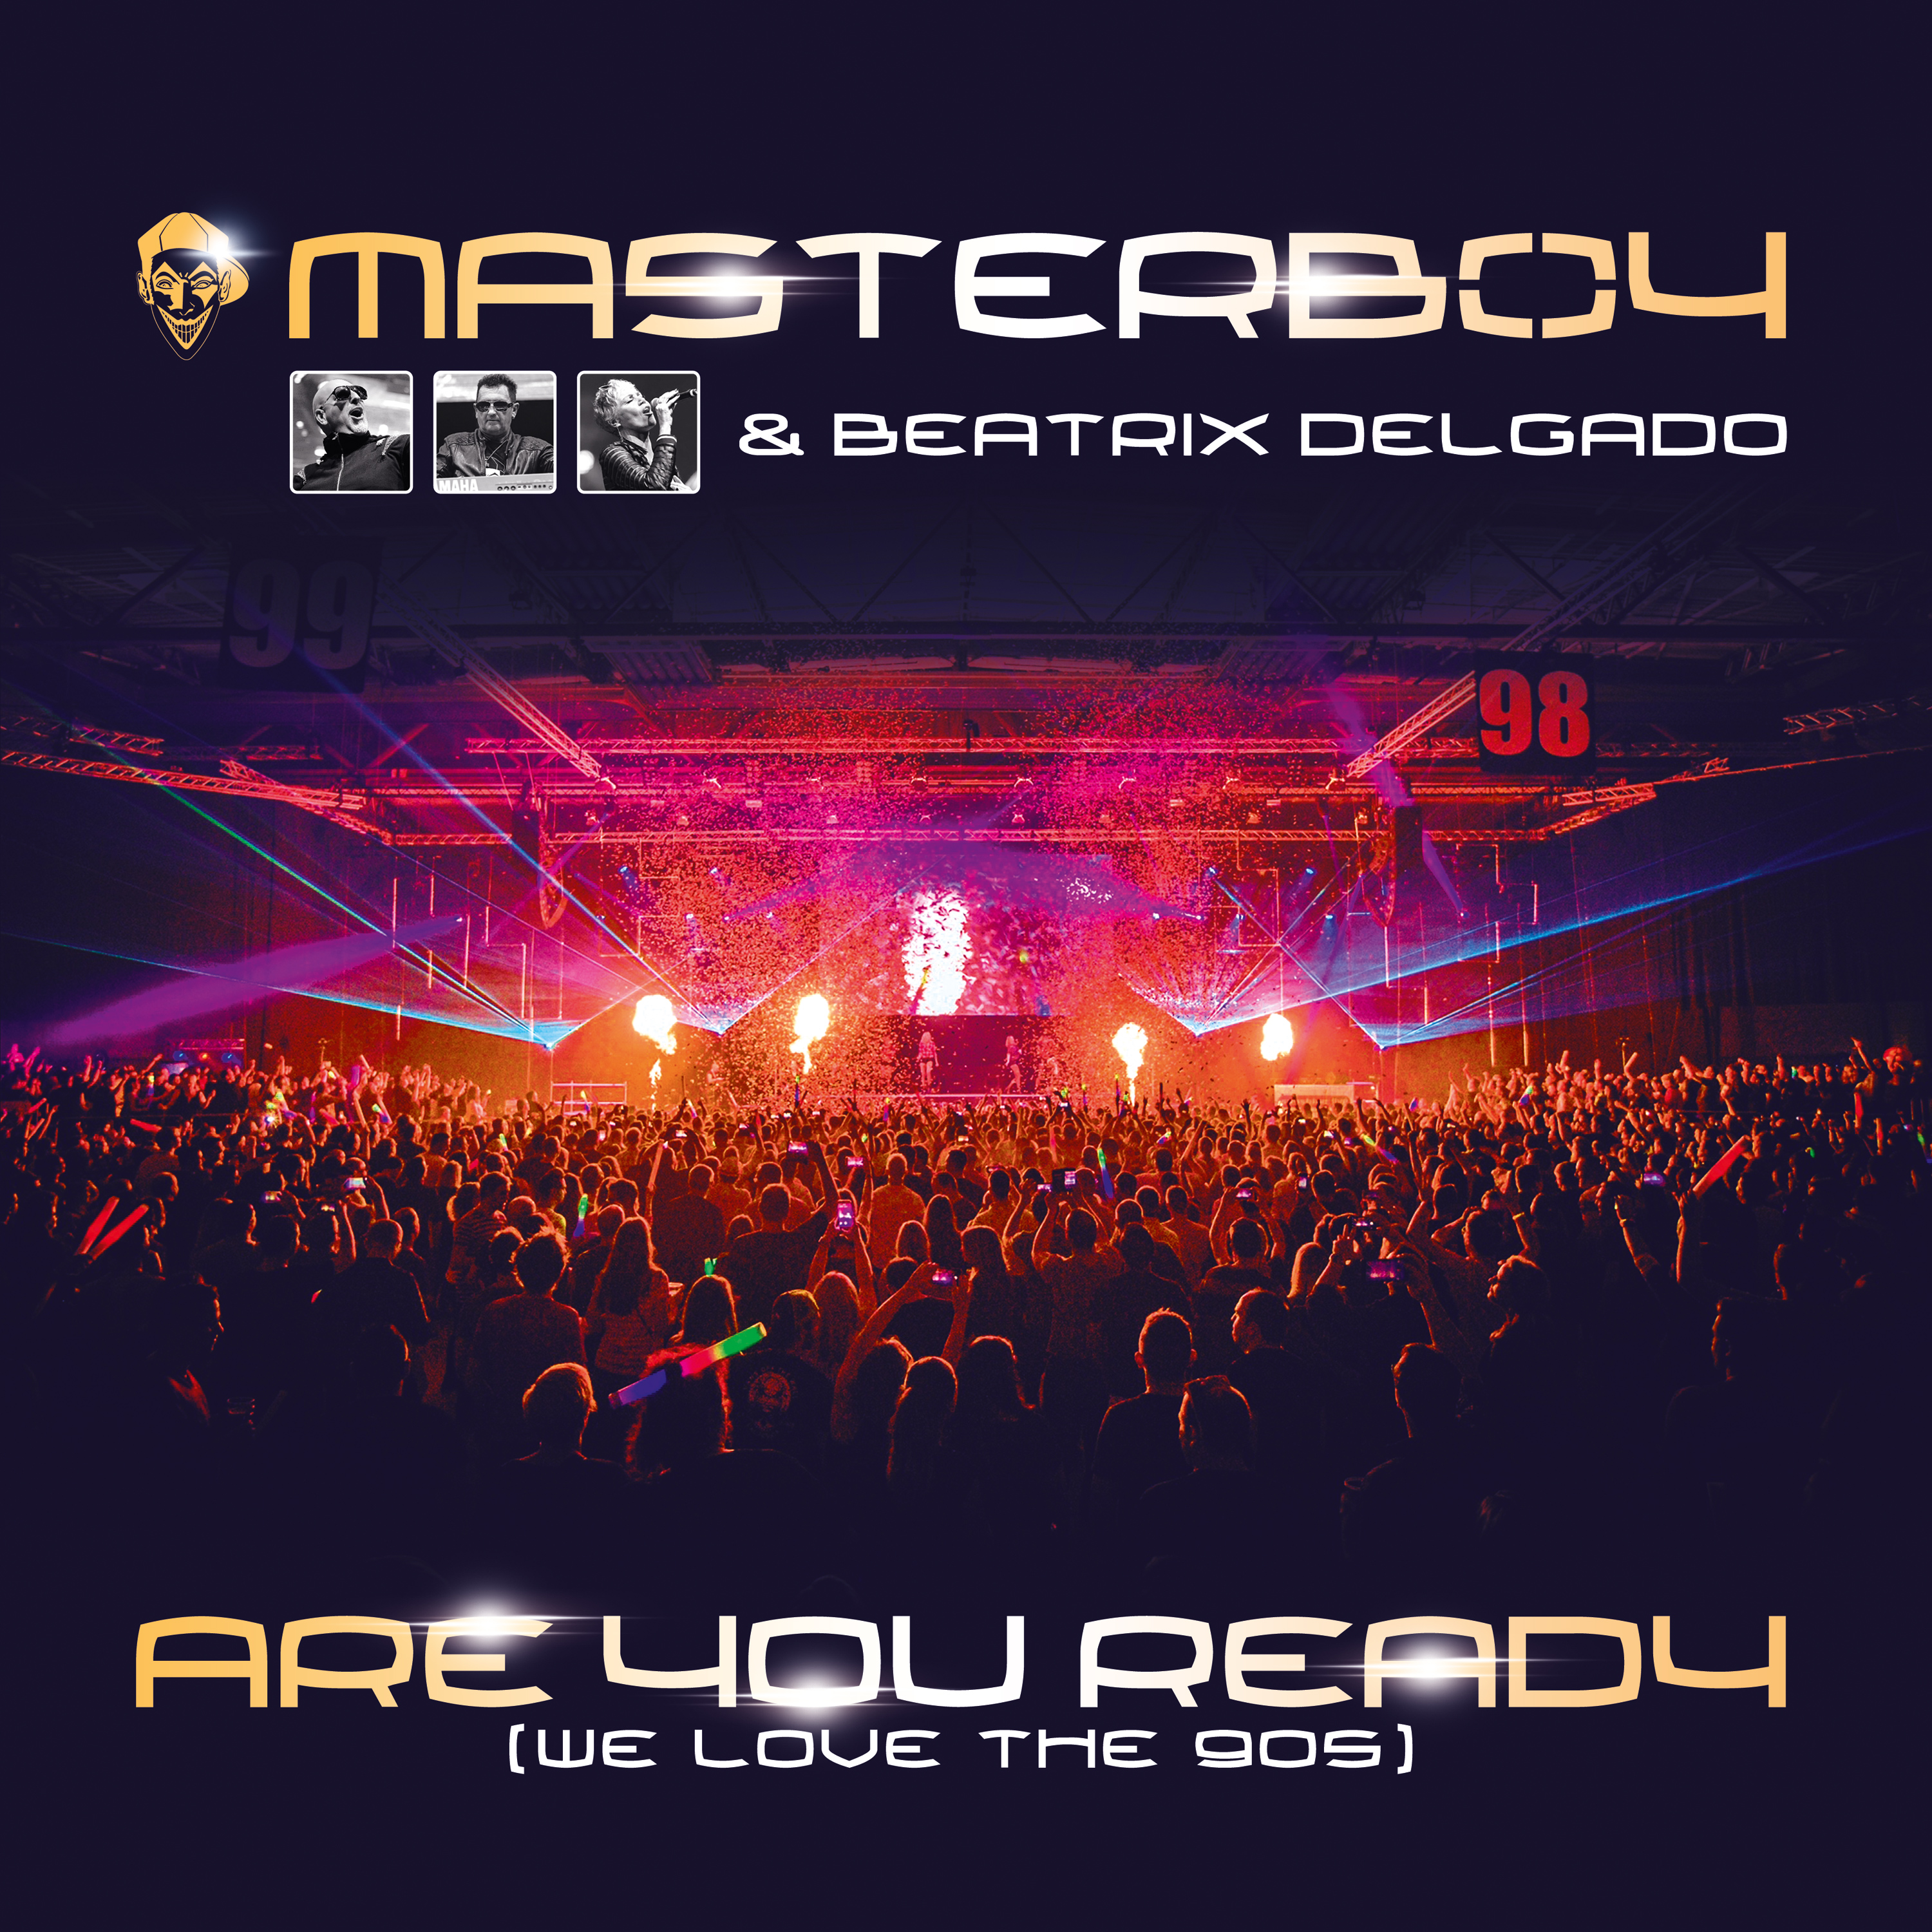 Masterboy & Beatrix Delgado - Are you Ready (We love the 90s) Vinyl